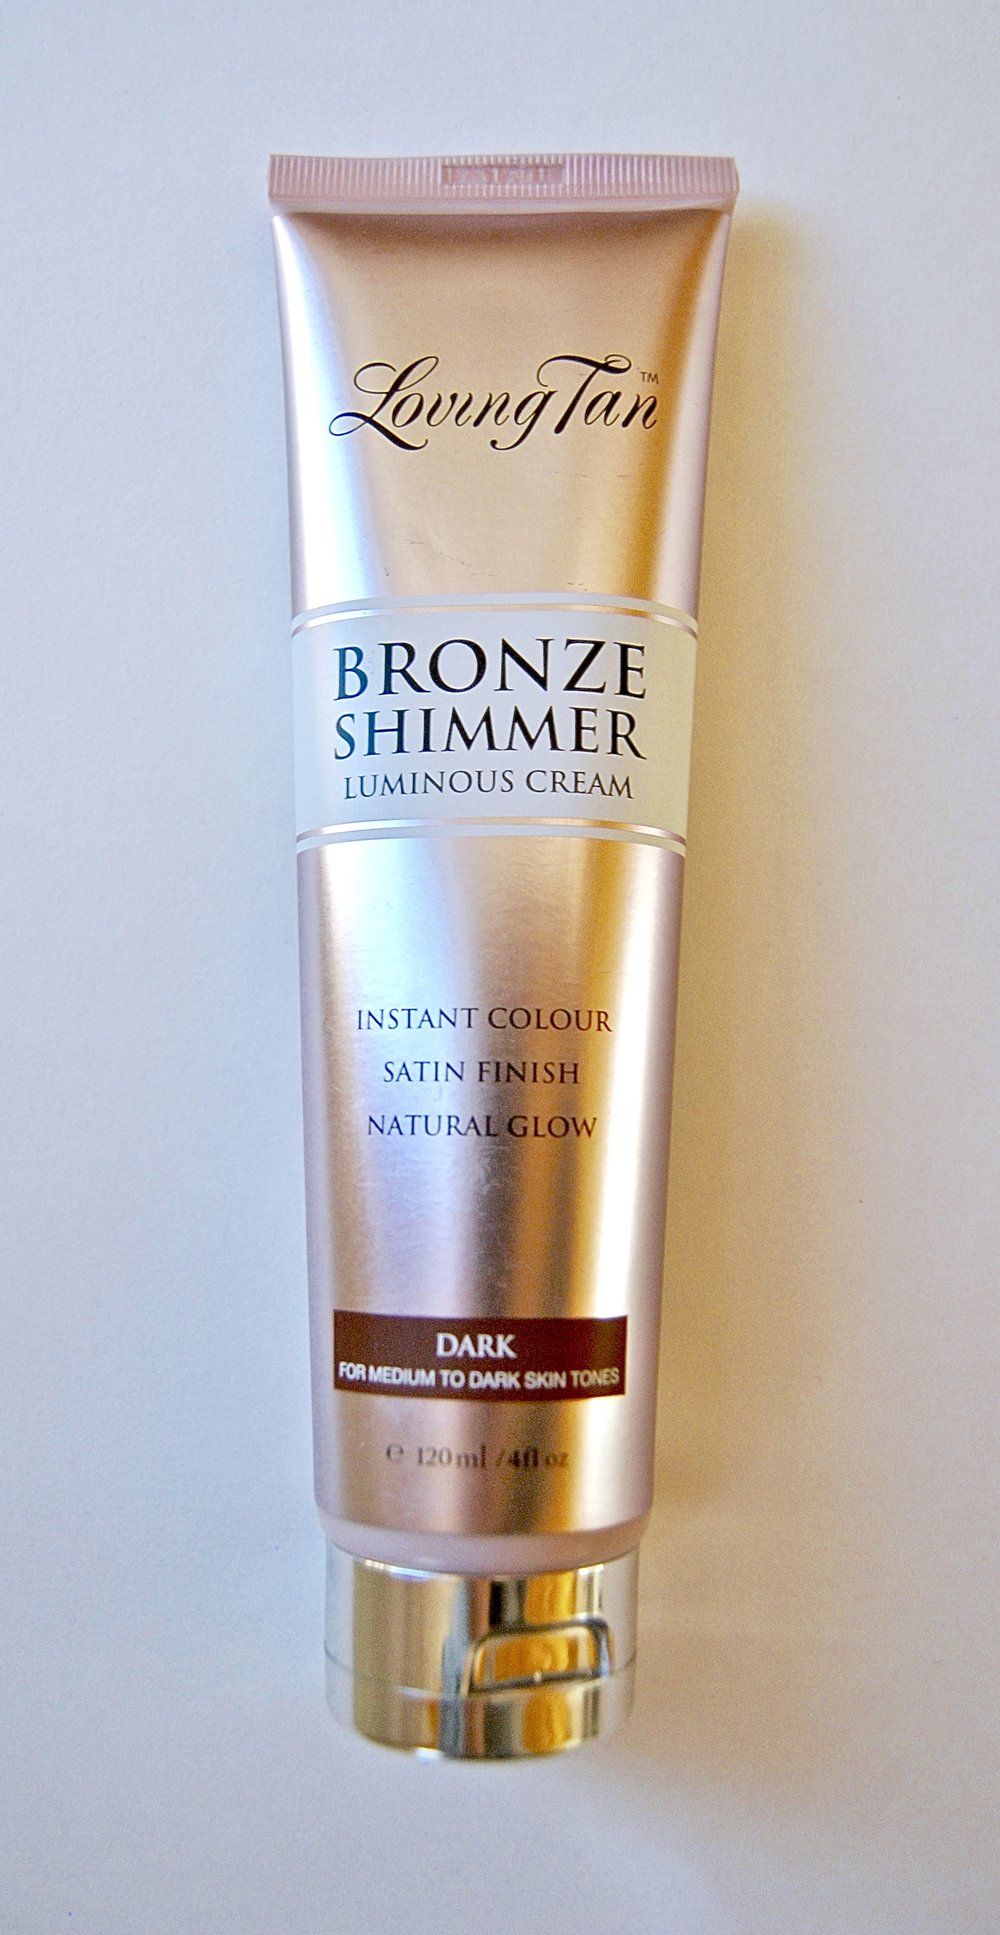 Loving Tan™ Bronze Shimmer Luminous Cream, 4 oz. - Ulta : $32.95usa.lovingtan.com : $32.95